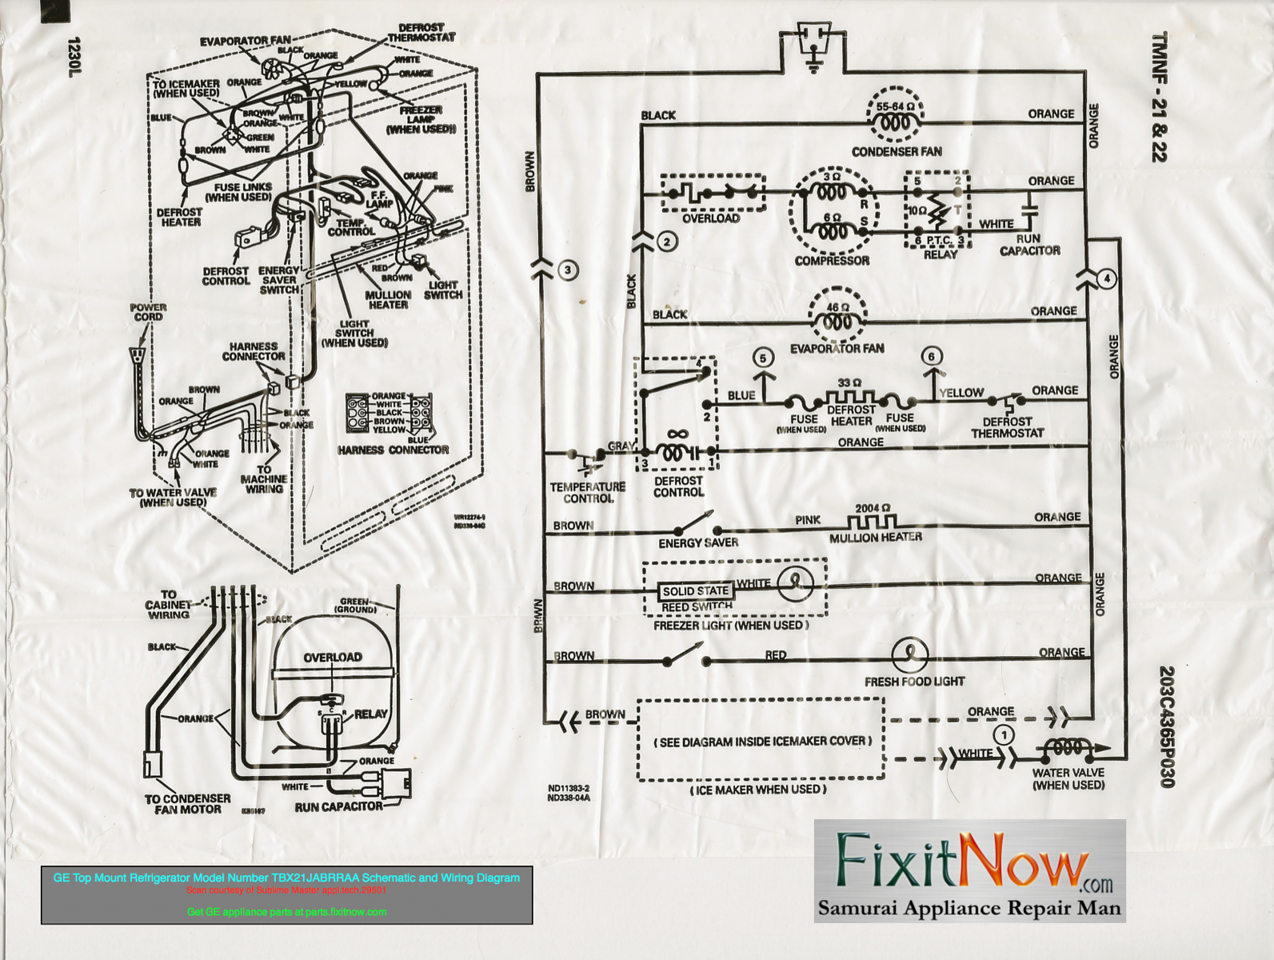 4904374061_e8eb3df6c6_o X2 wiring diagrams and schematics appliantology Wiring Harness Diagram at edmiracle.co